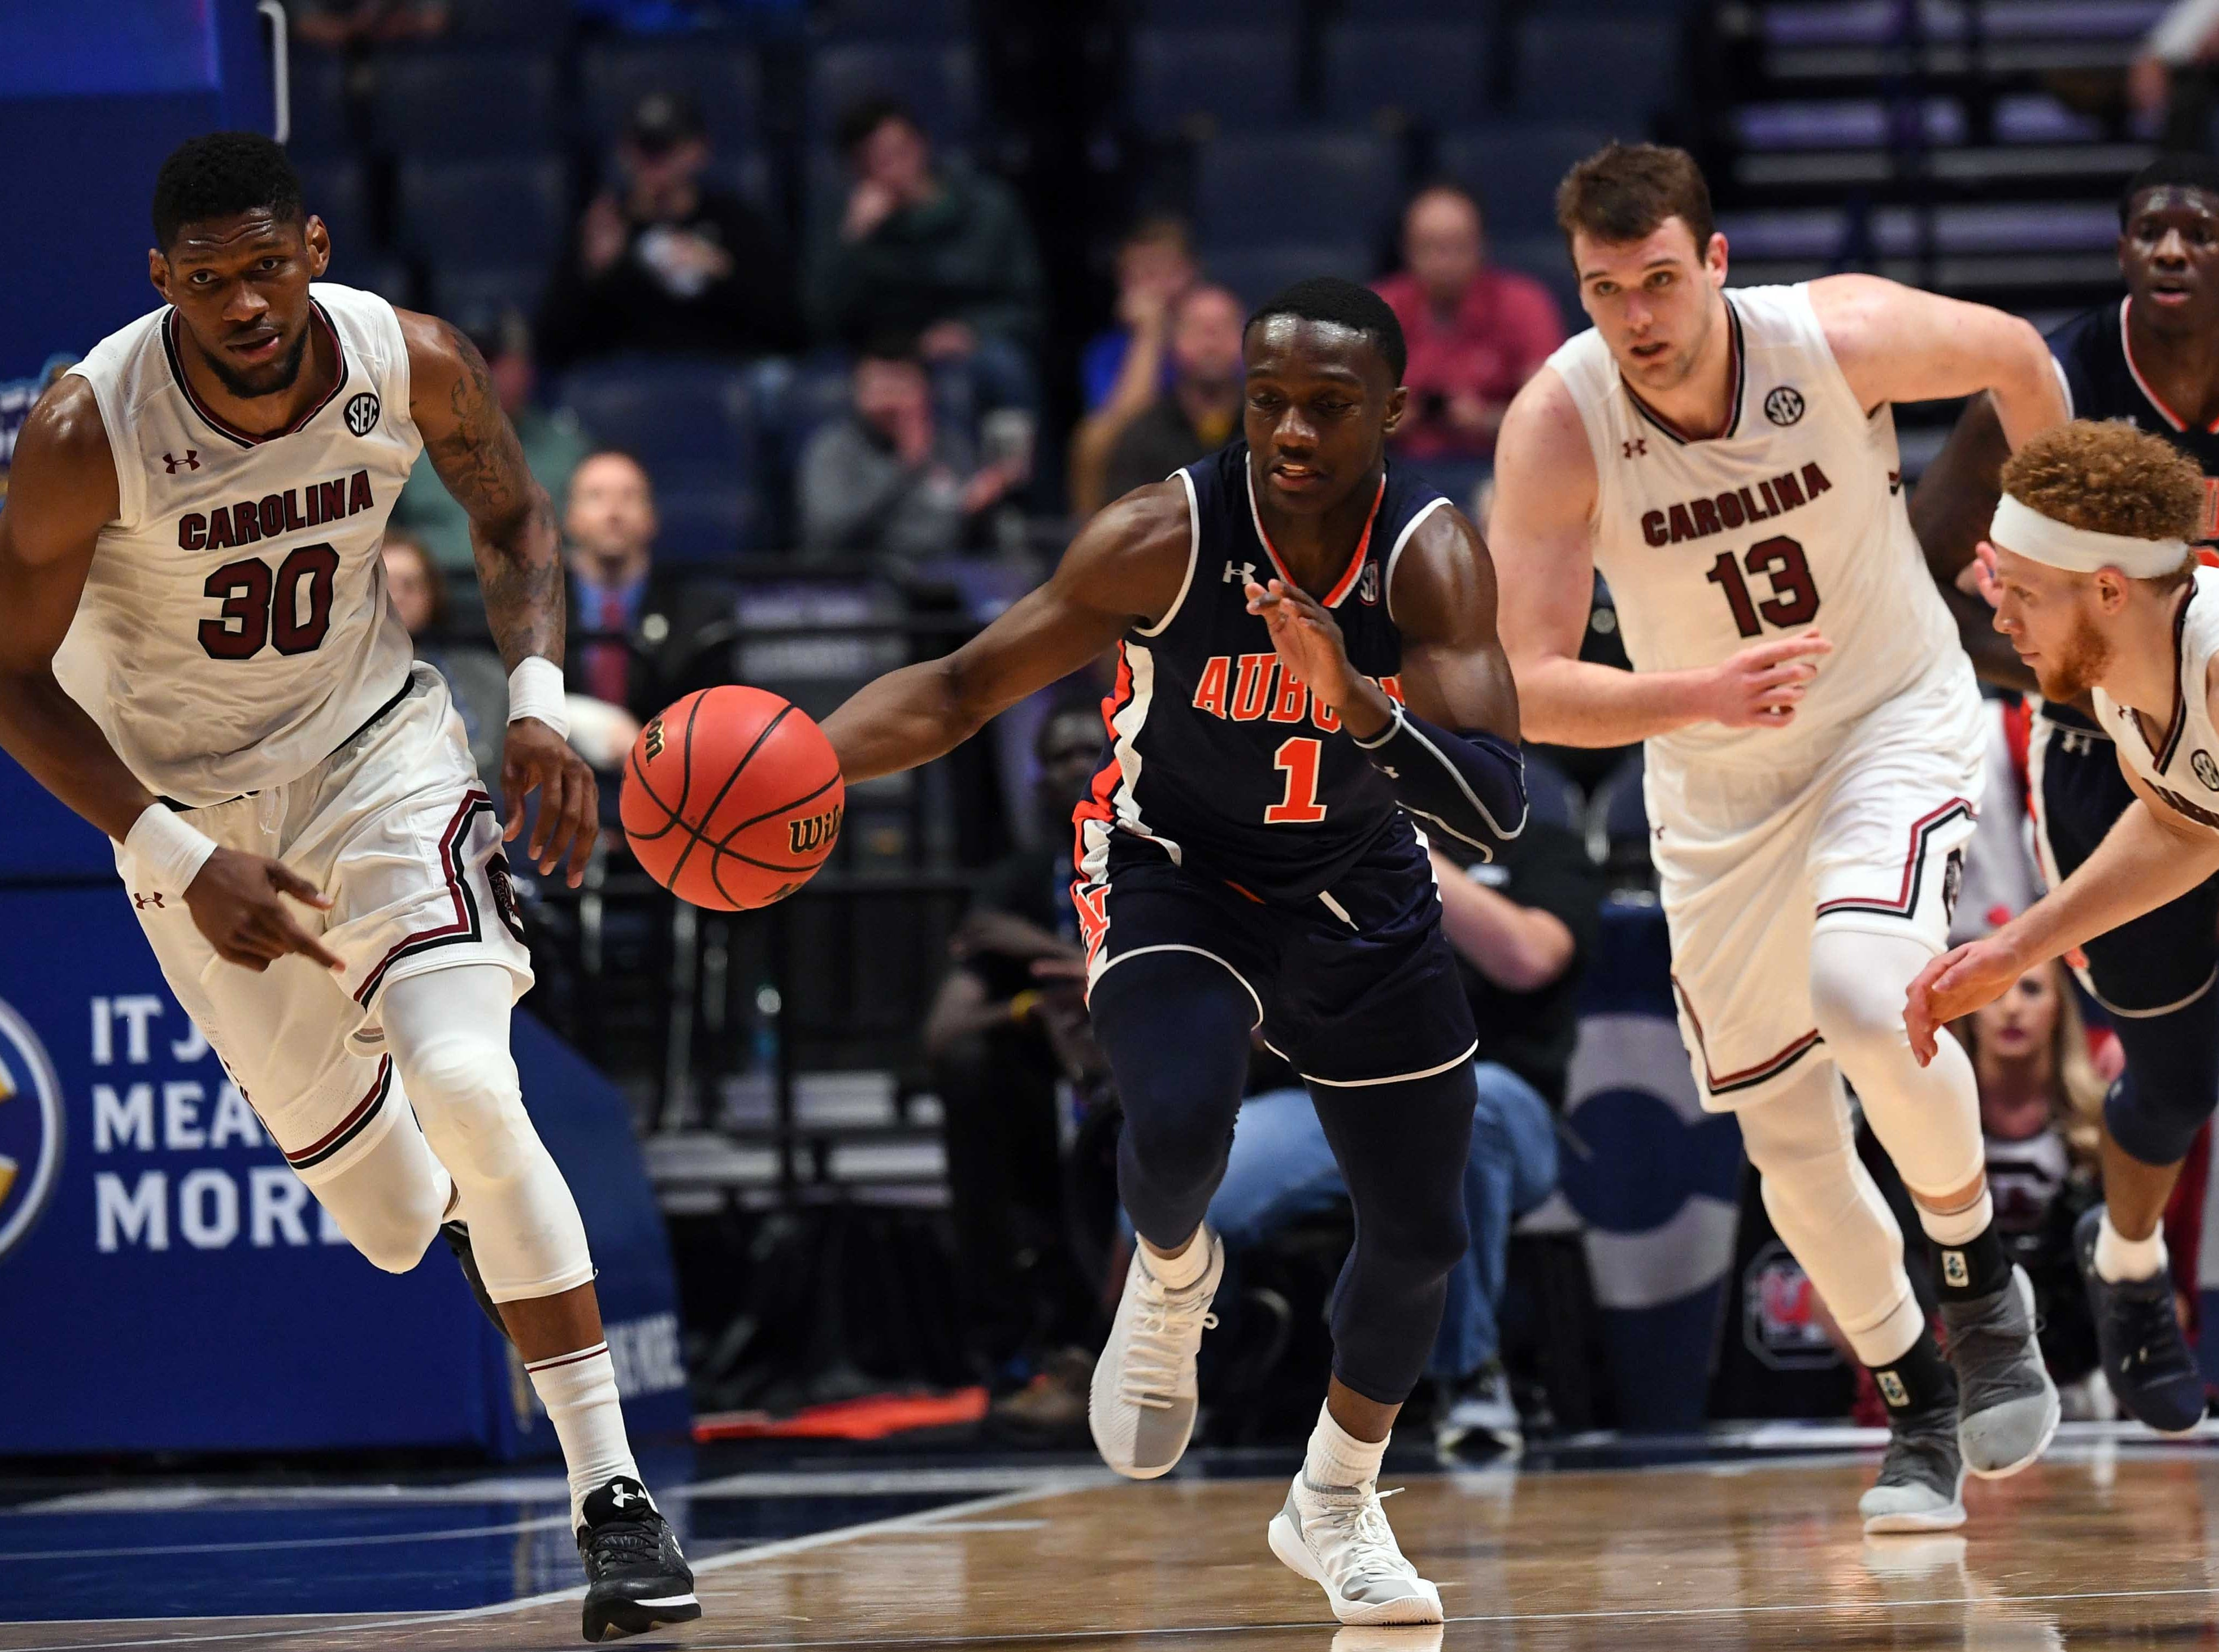 Mar 15, 2019; Nashville, TN, USA; Auburn Tigers guard Jared Harper (1) pushes the ball up the floor after stealing the ball from South Carolina Gamecocks guard Hassani Gravett (2) during the second half  of the SEC conference tournament at Bridgestone Arena. Mandatory Credit: Christopher Hanewinckel-USA TODAY Sports